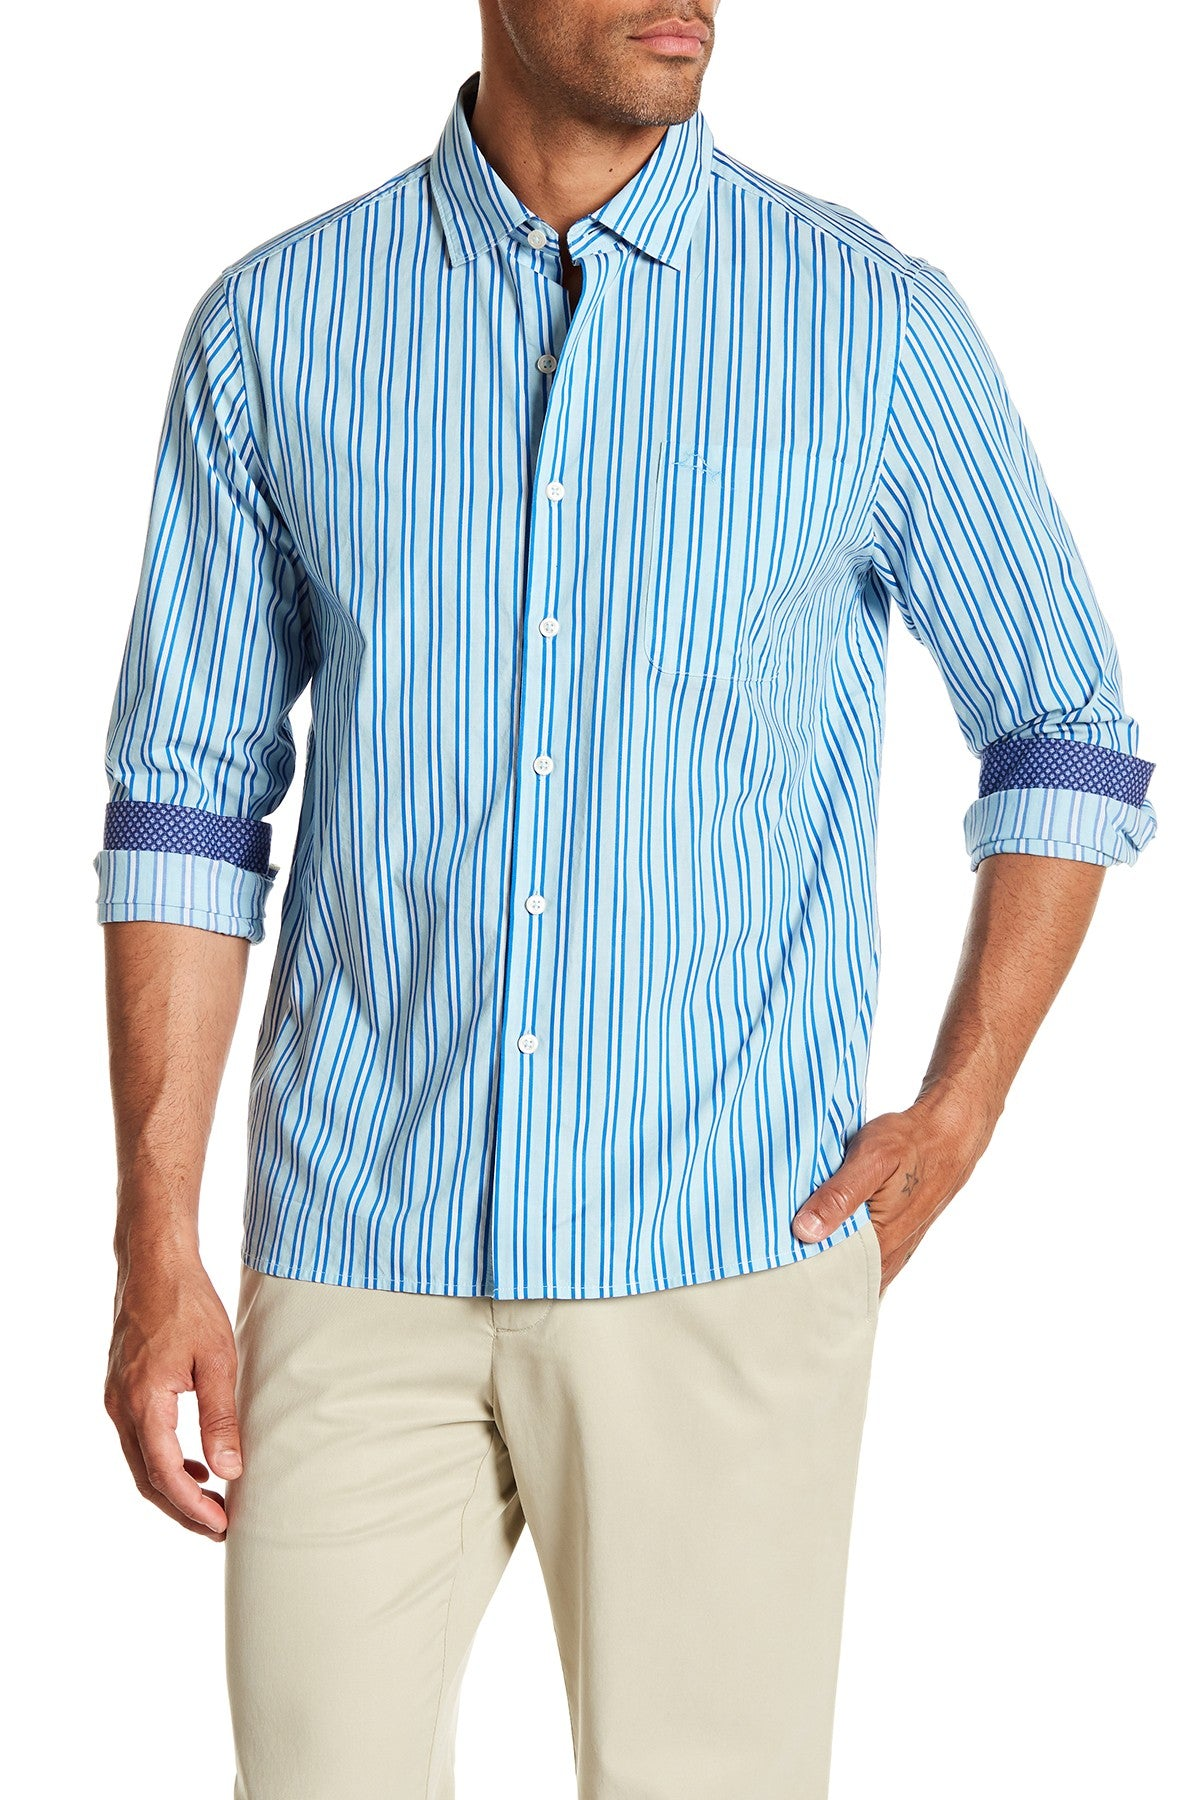 Tommy Bahama Surf The Line Long Sleeve Shirt - Riviera Azure Blue